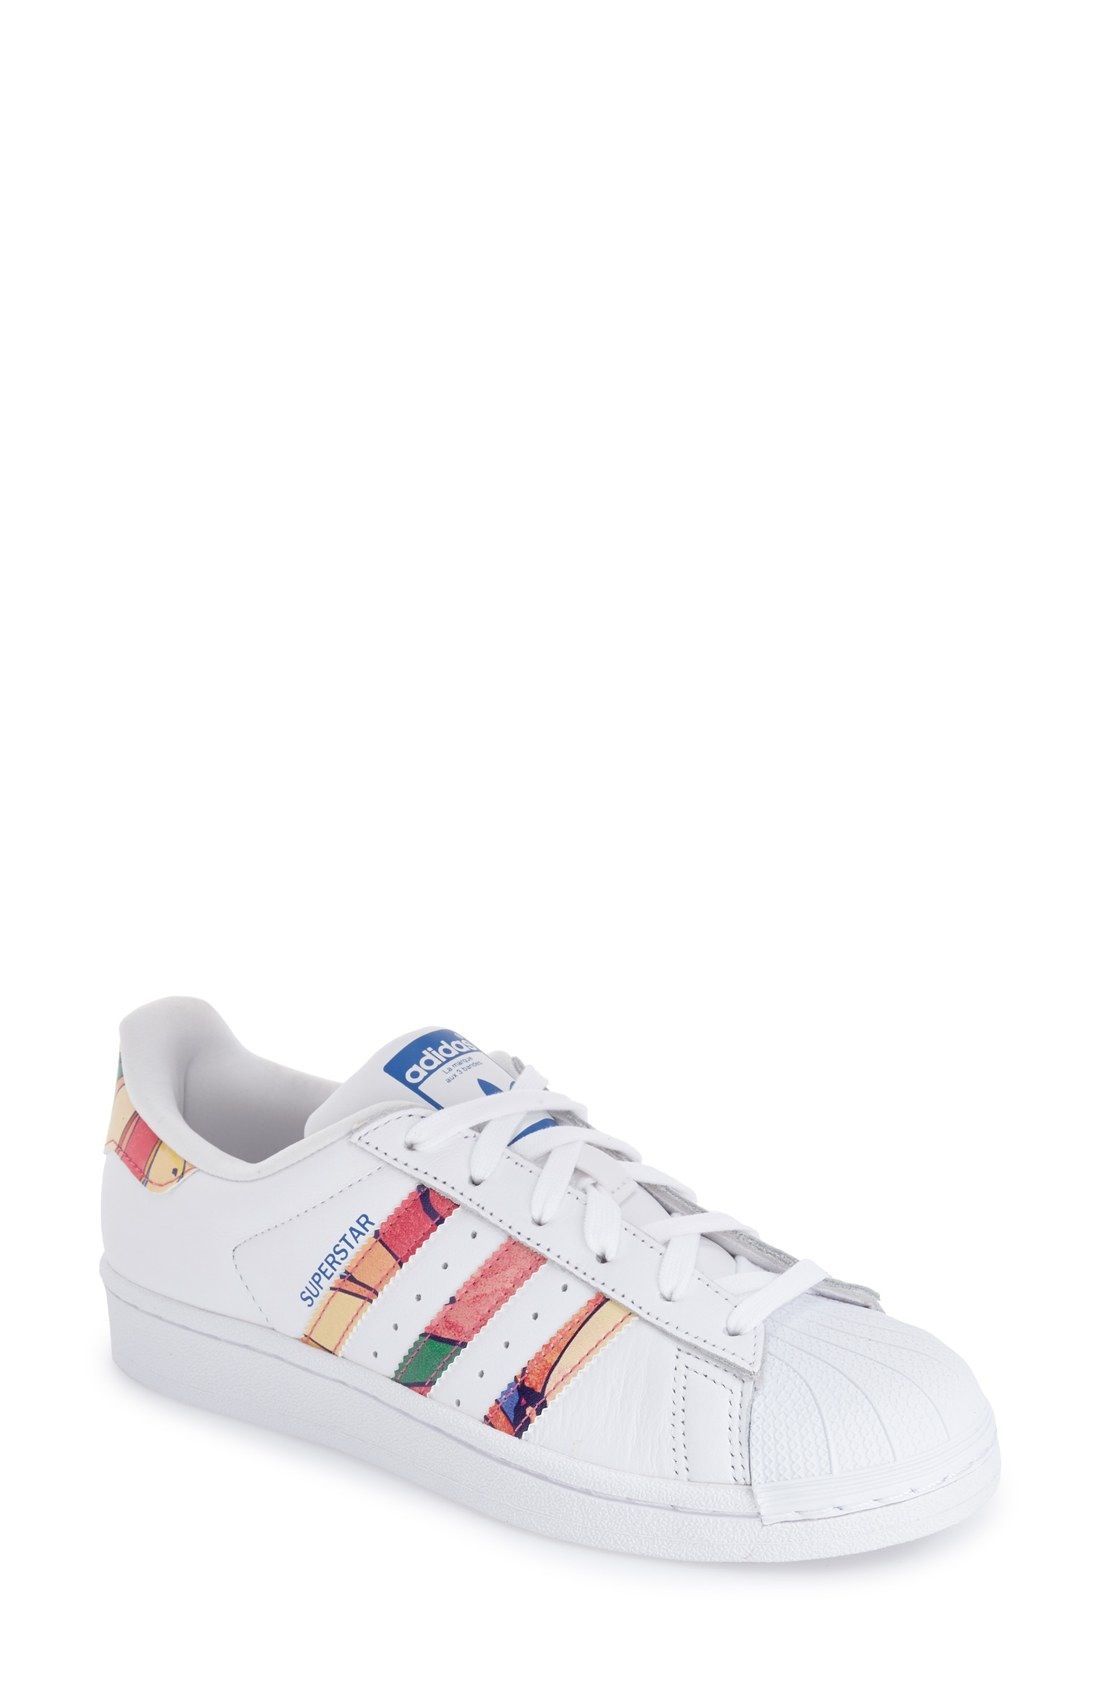 size 40 39818 e26d7 adidas 'Superstar' Print Sneaker (Women) available at ...